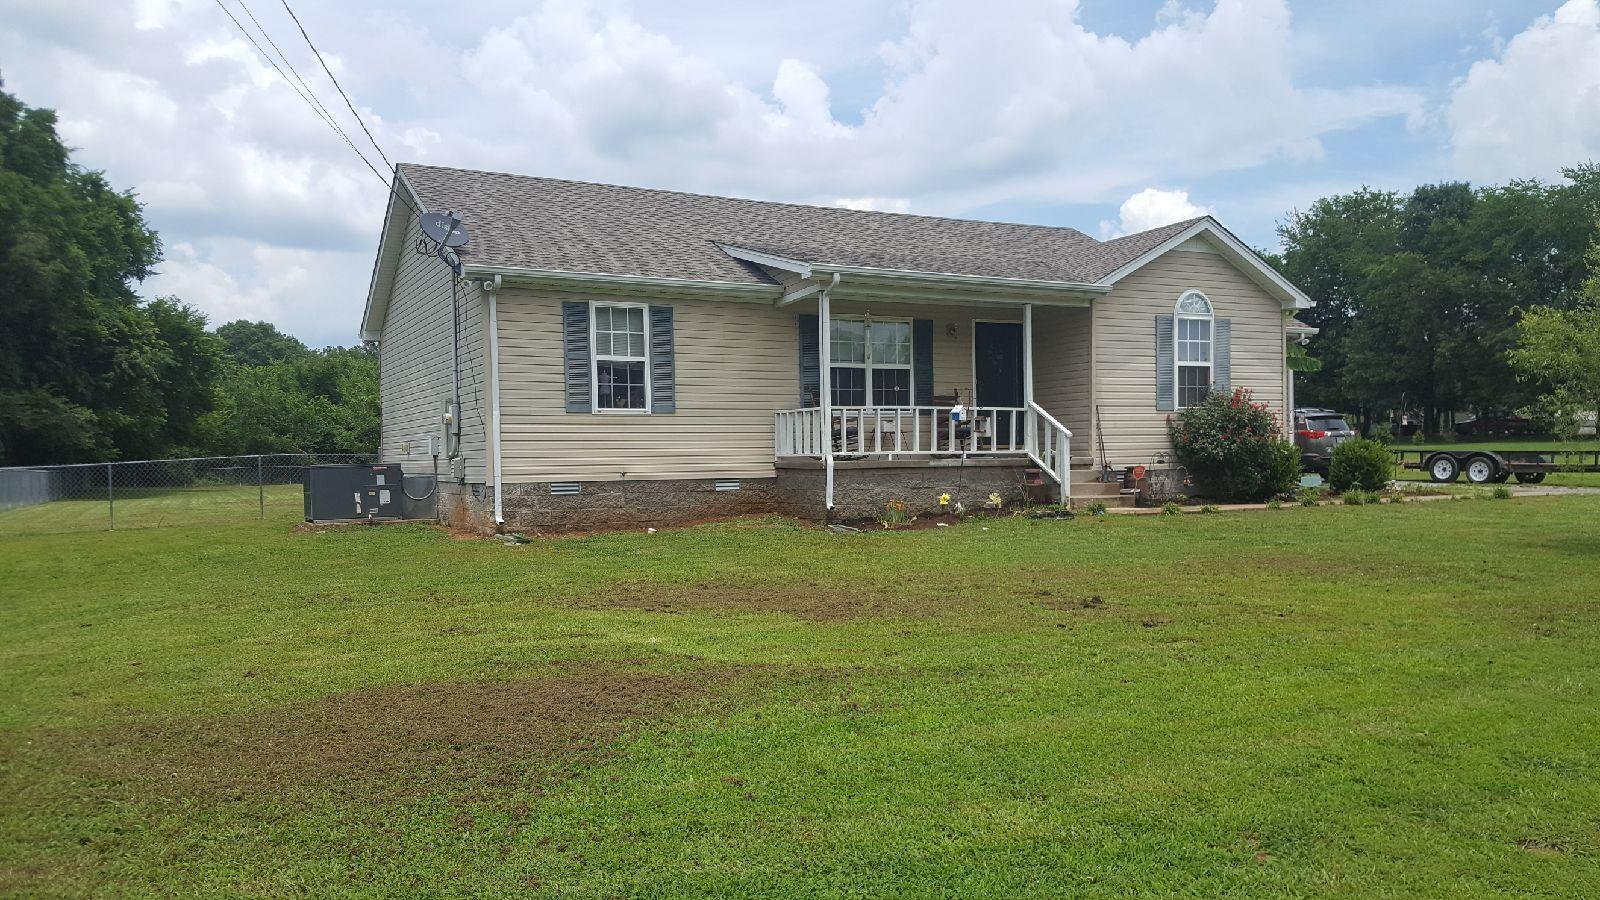 243 Paragon Dr, Bell Buckle, TN 37020 - Bell Buckle, TN real estate listing